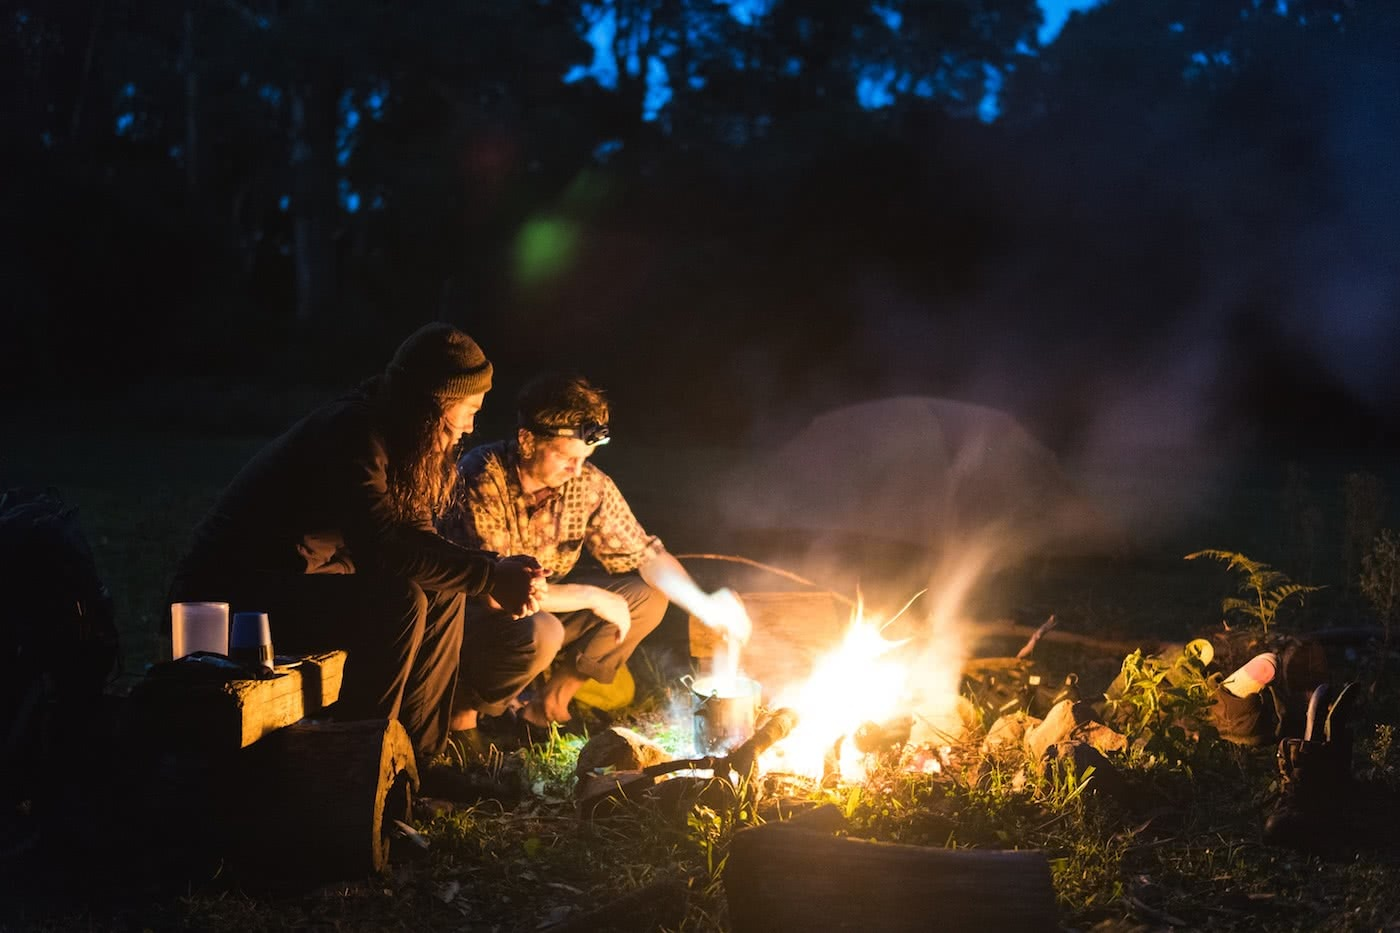 A Wilderness Surfari In Remote East Gippsland (VIC/NSW) by Jake, Sam and Georgia Doherty Osprey Adventure Grant, surf boards, camp fire vibes